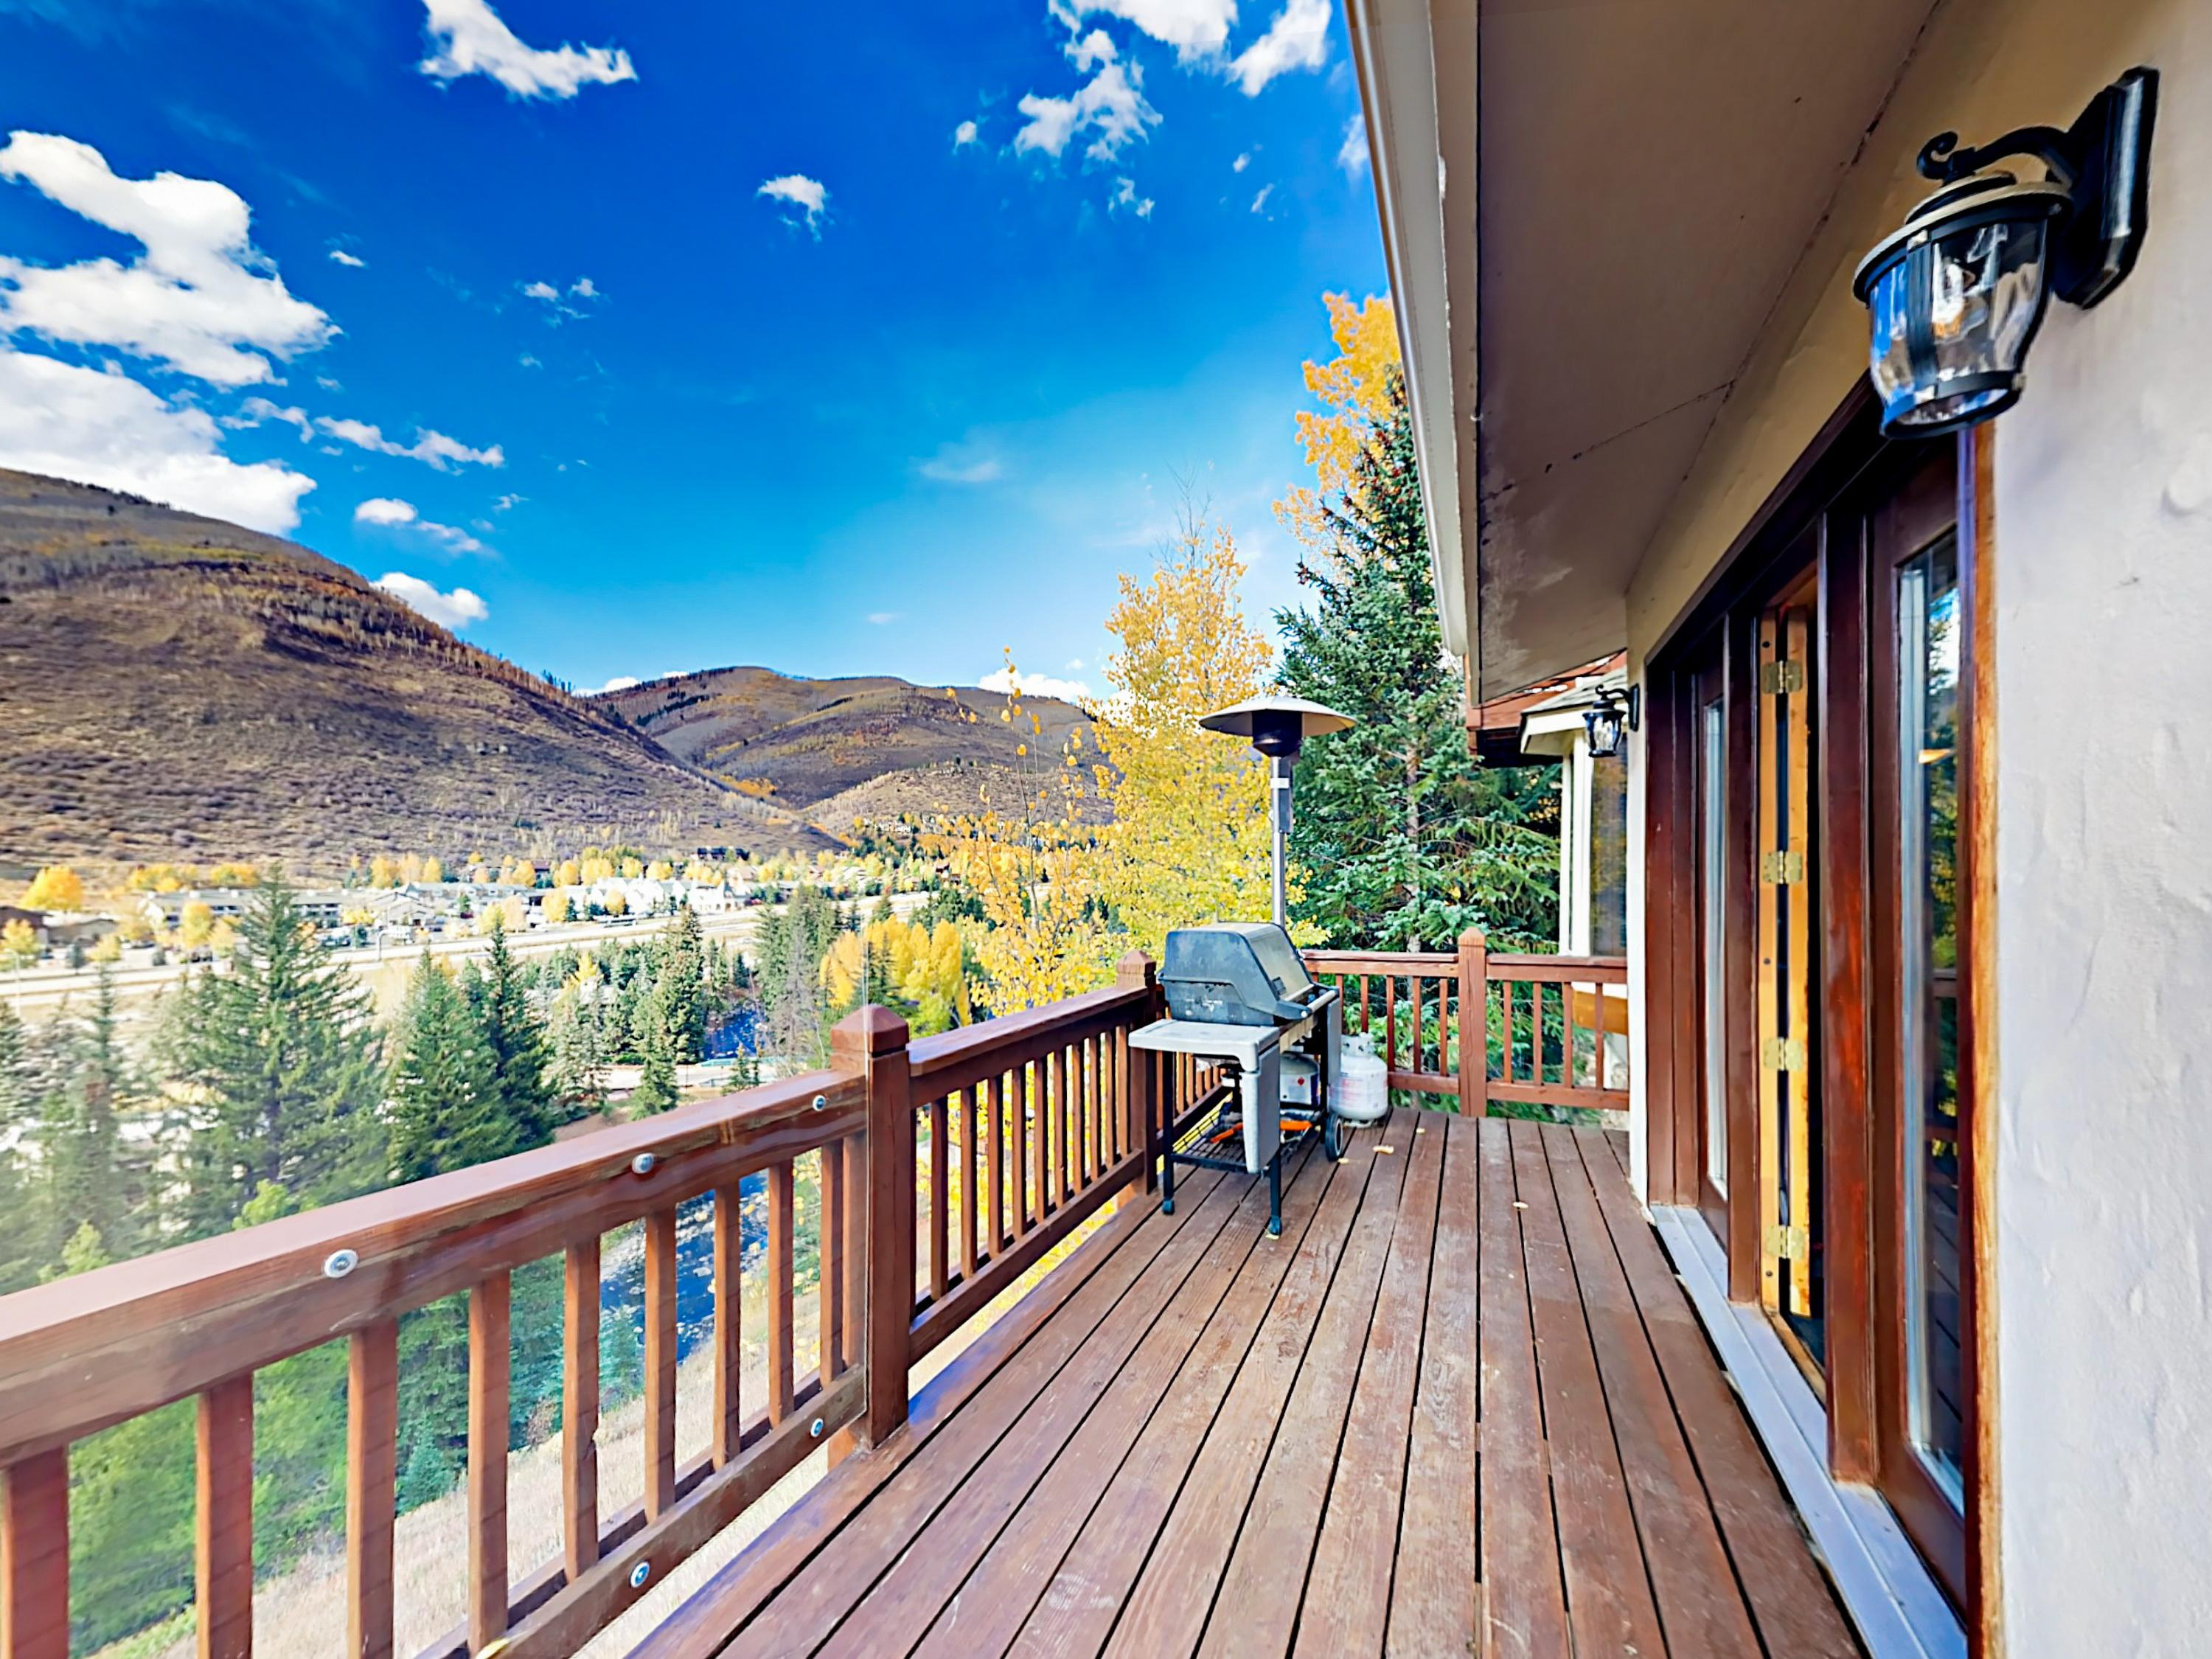 Welcome to Vail! Your rental is professionally managed by TurnKey Vacation Rentals. Located just 1 mile away, enjoy unparalleled access to Vail's ski spots from the Cascade Chair Lift.